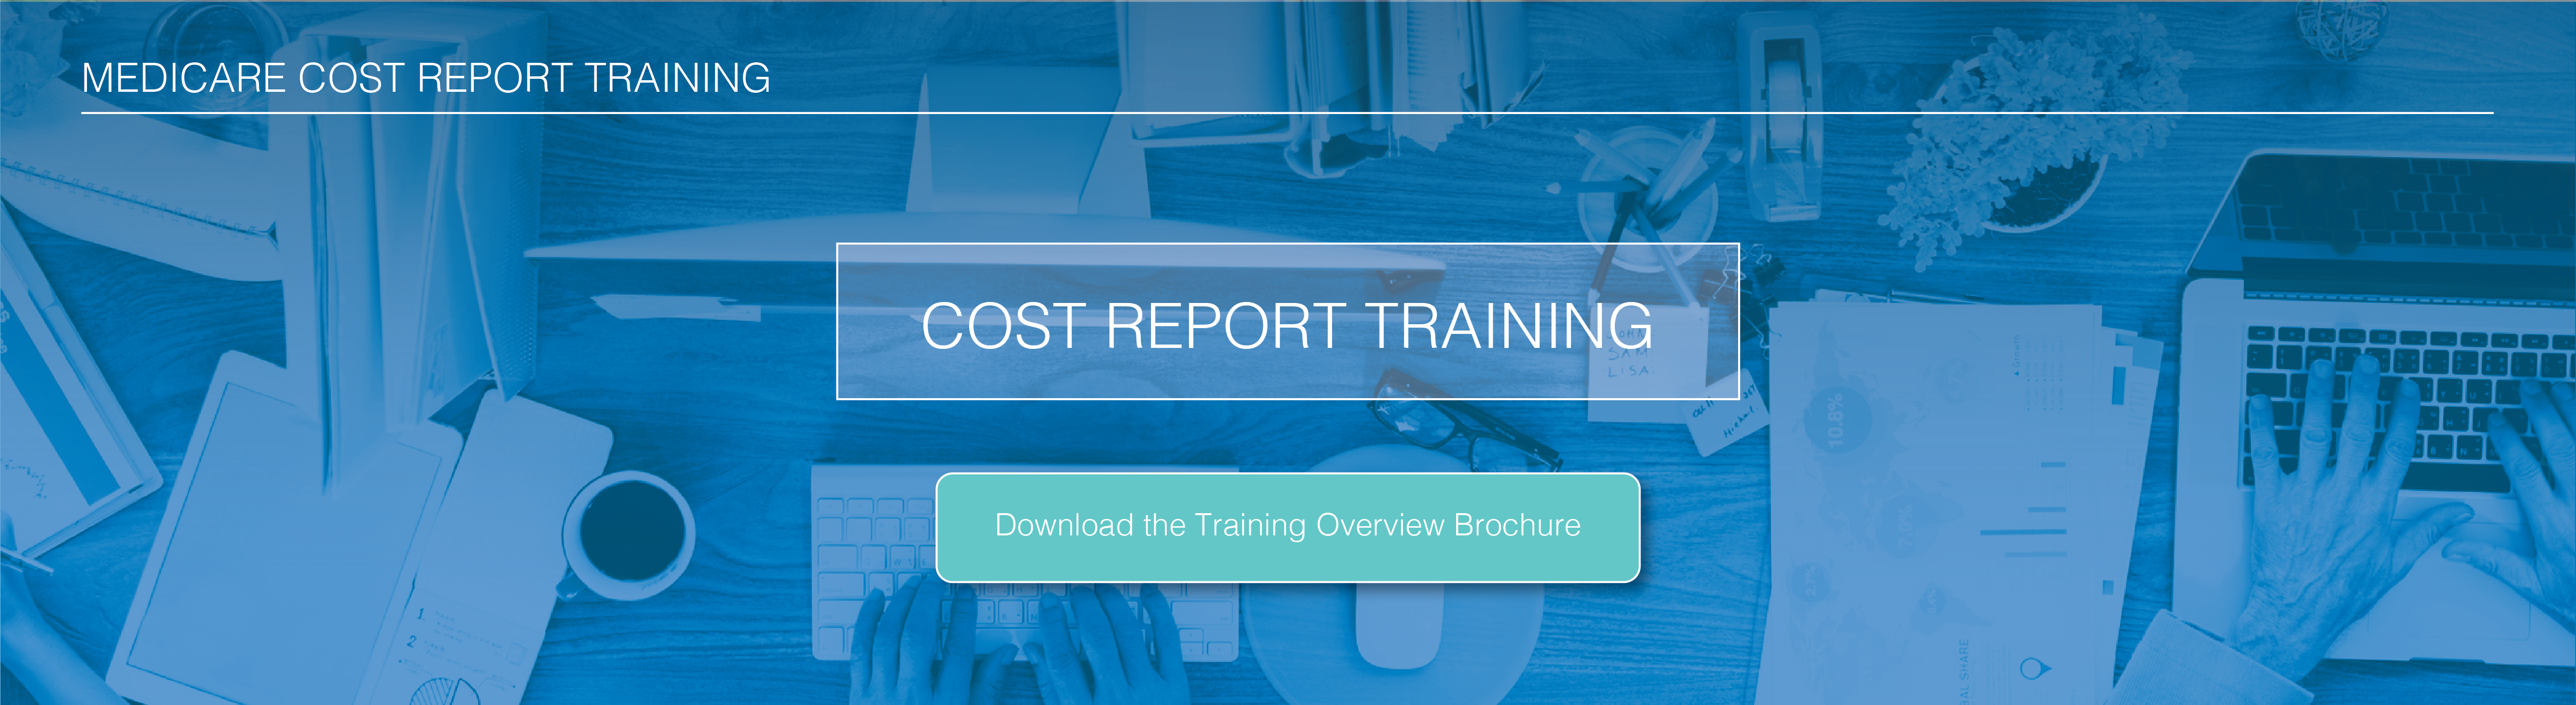 Download Training Overview Brochure